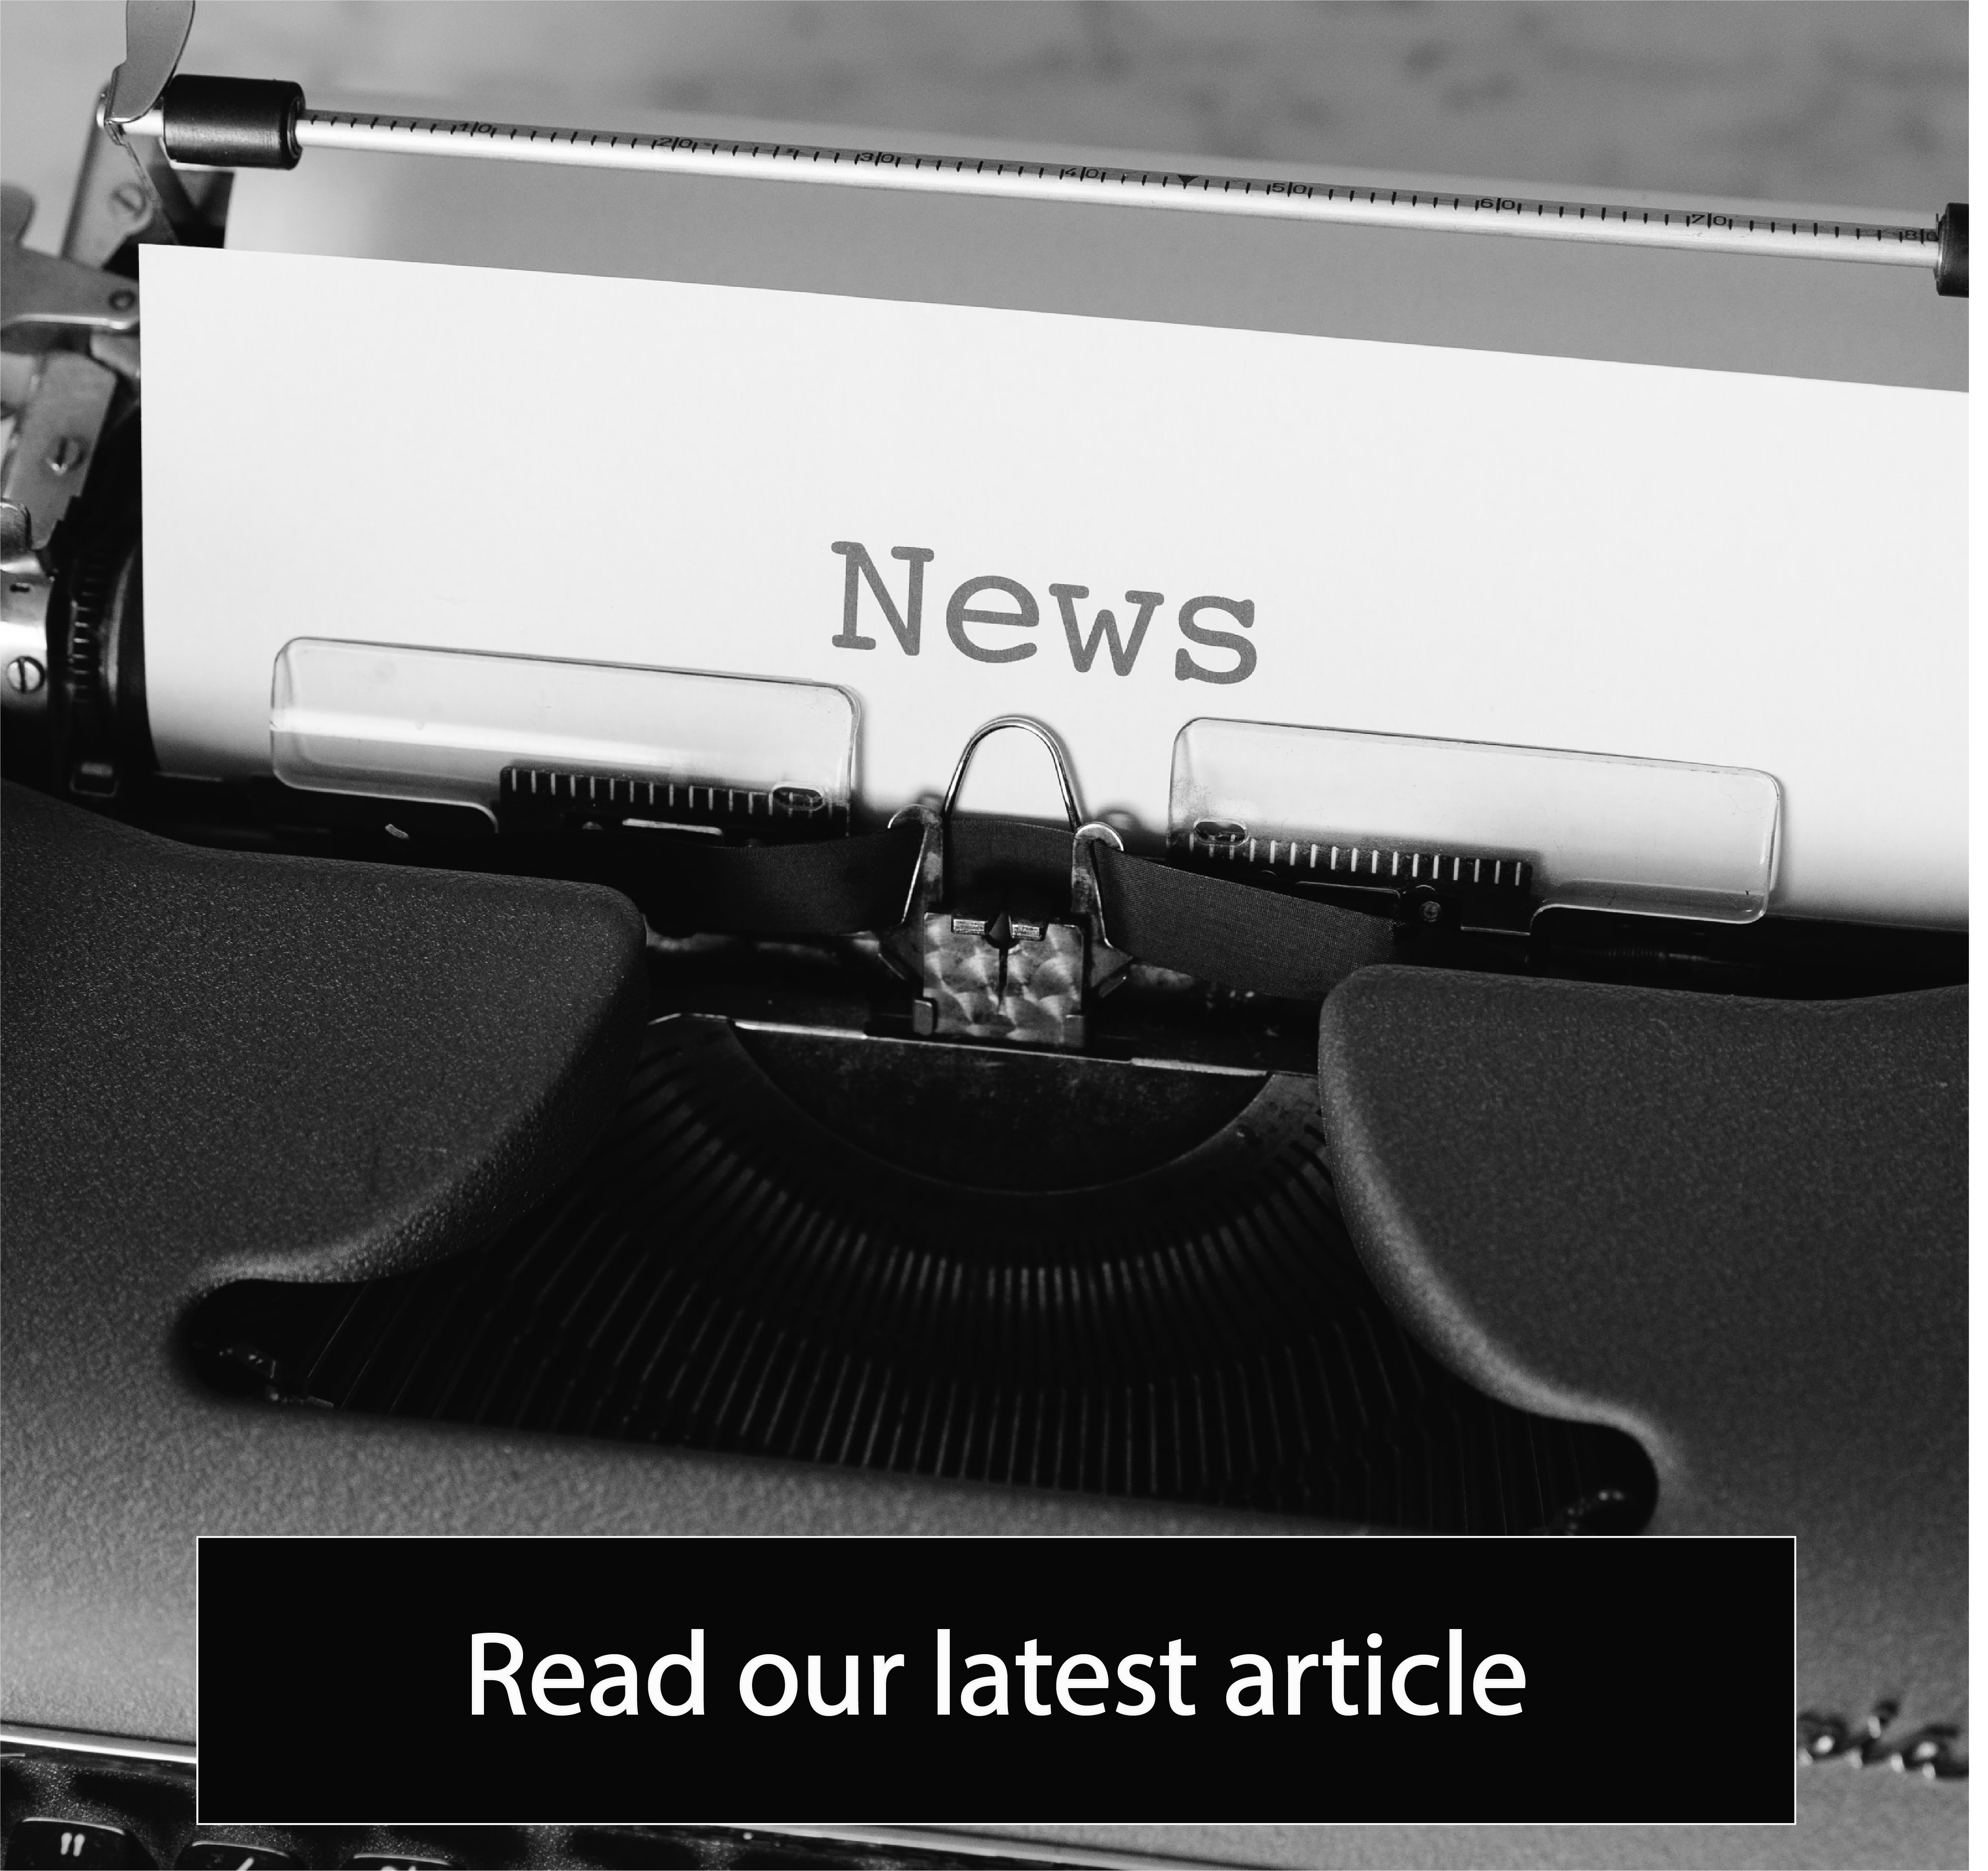 Typewritter photo + 'read our latest article' button